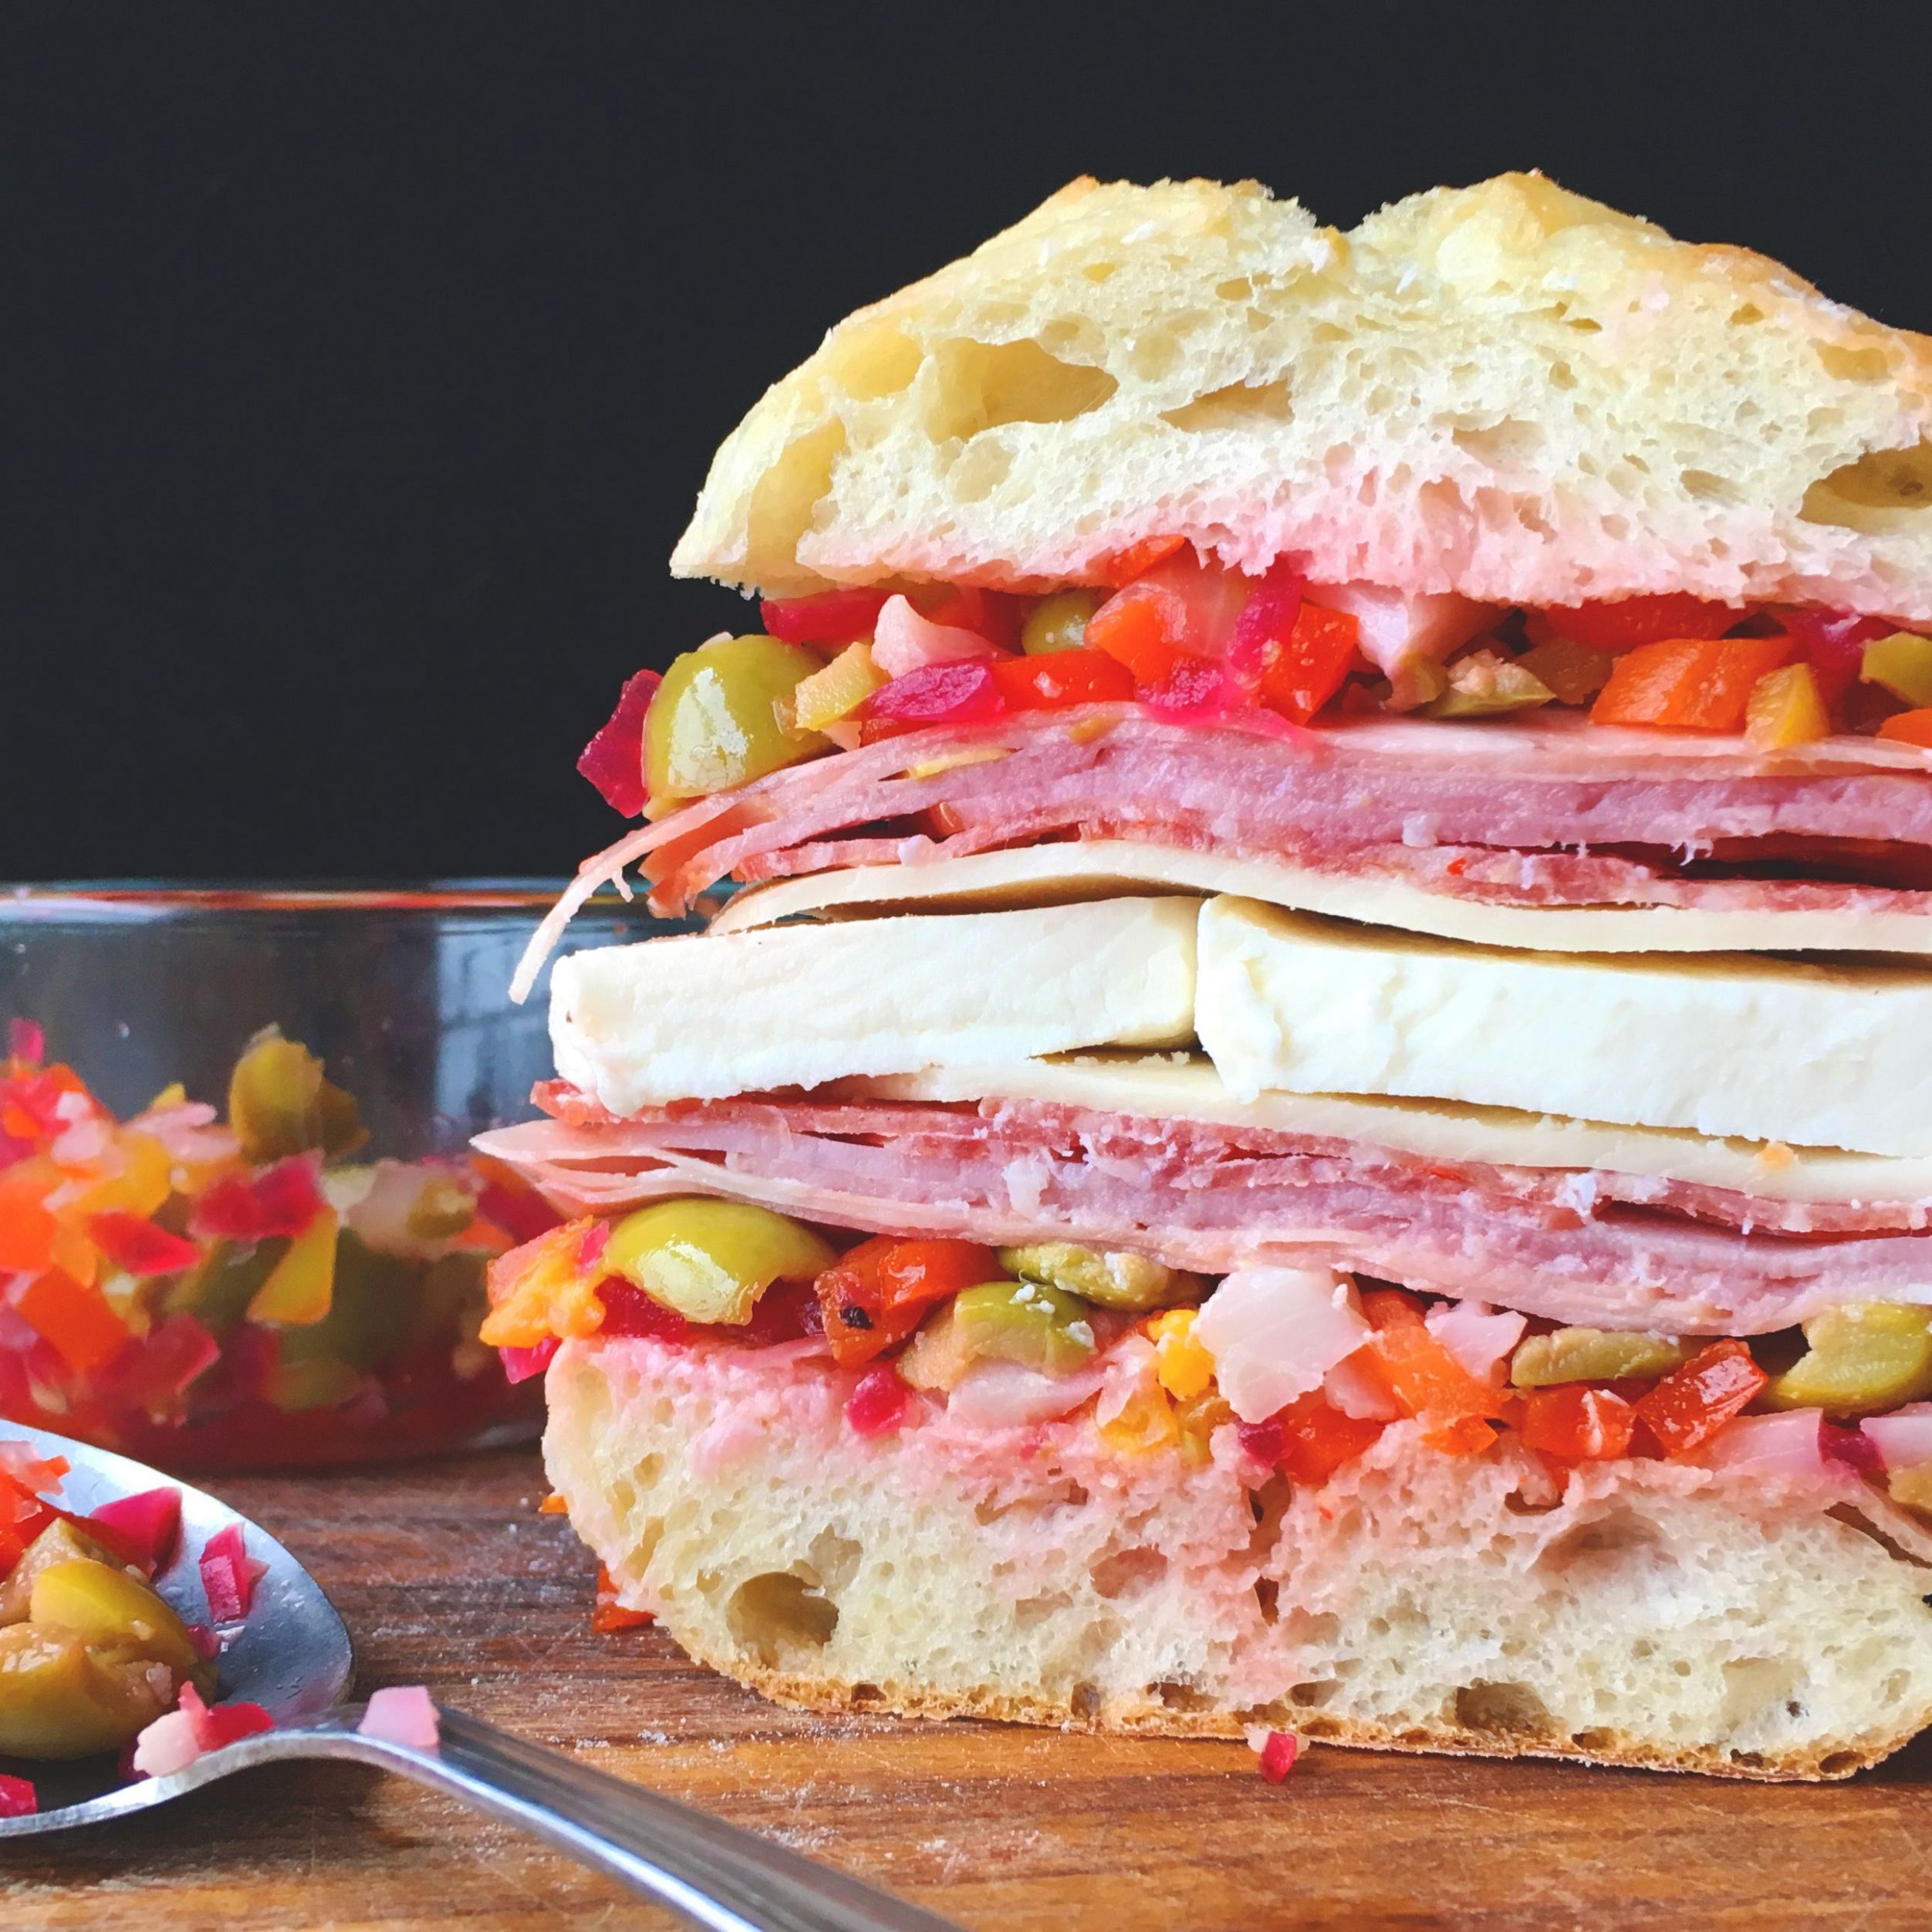 11 Creative Cold Sandwich Recipes